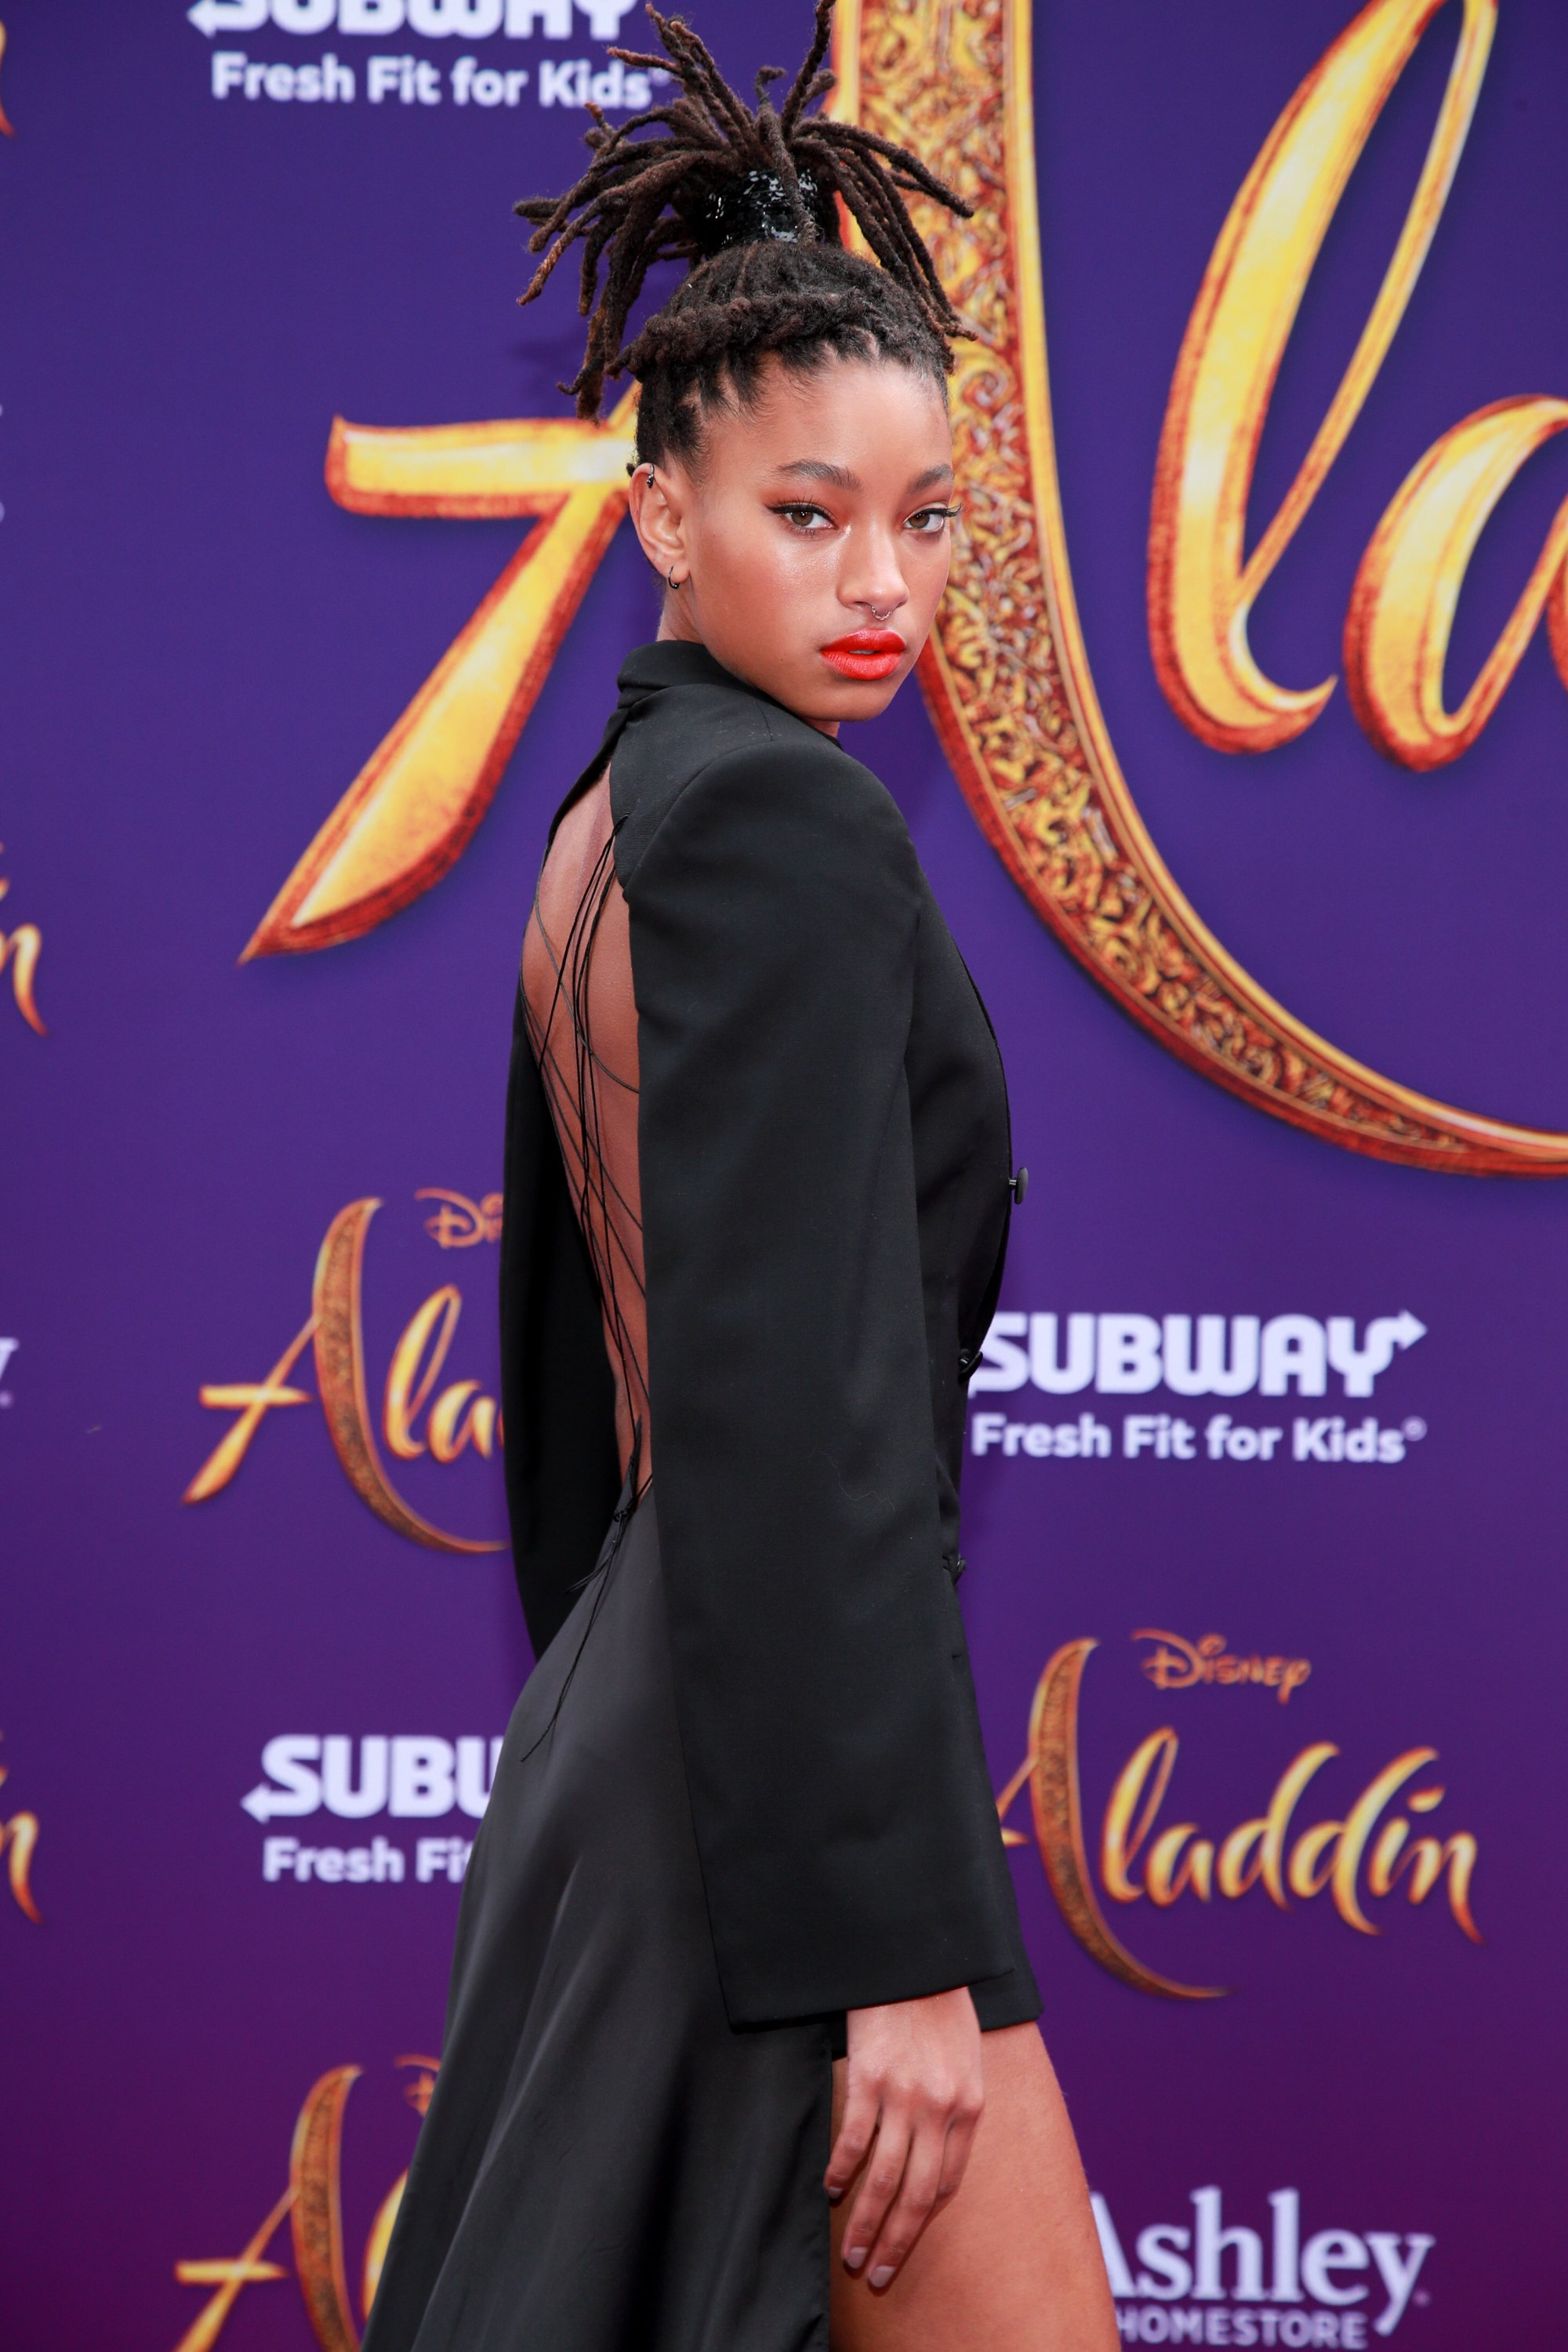 """Willow Smith at the premiere of Disney's """"Aladdin"""" on May 21, 2019 in Los Angeles, California.